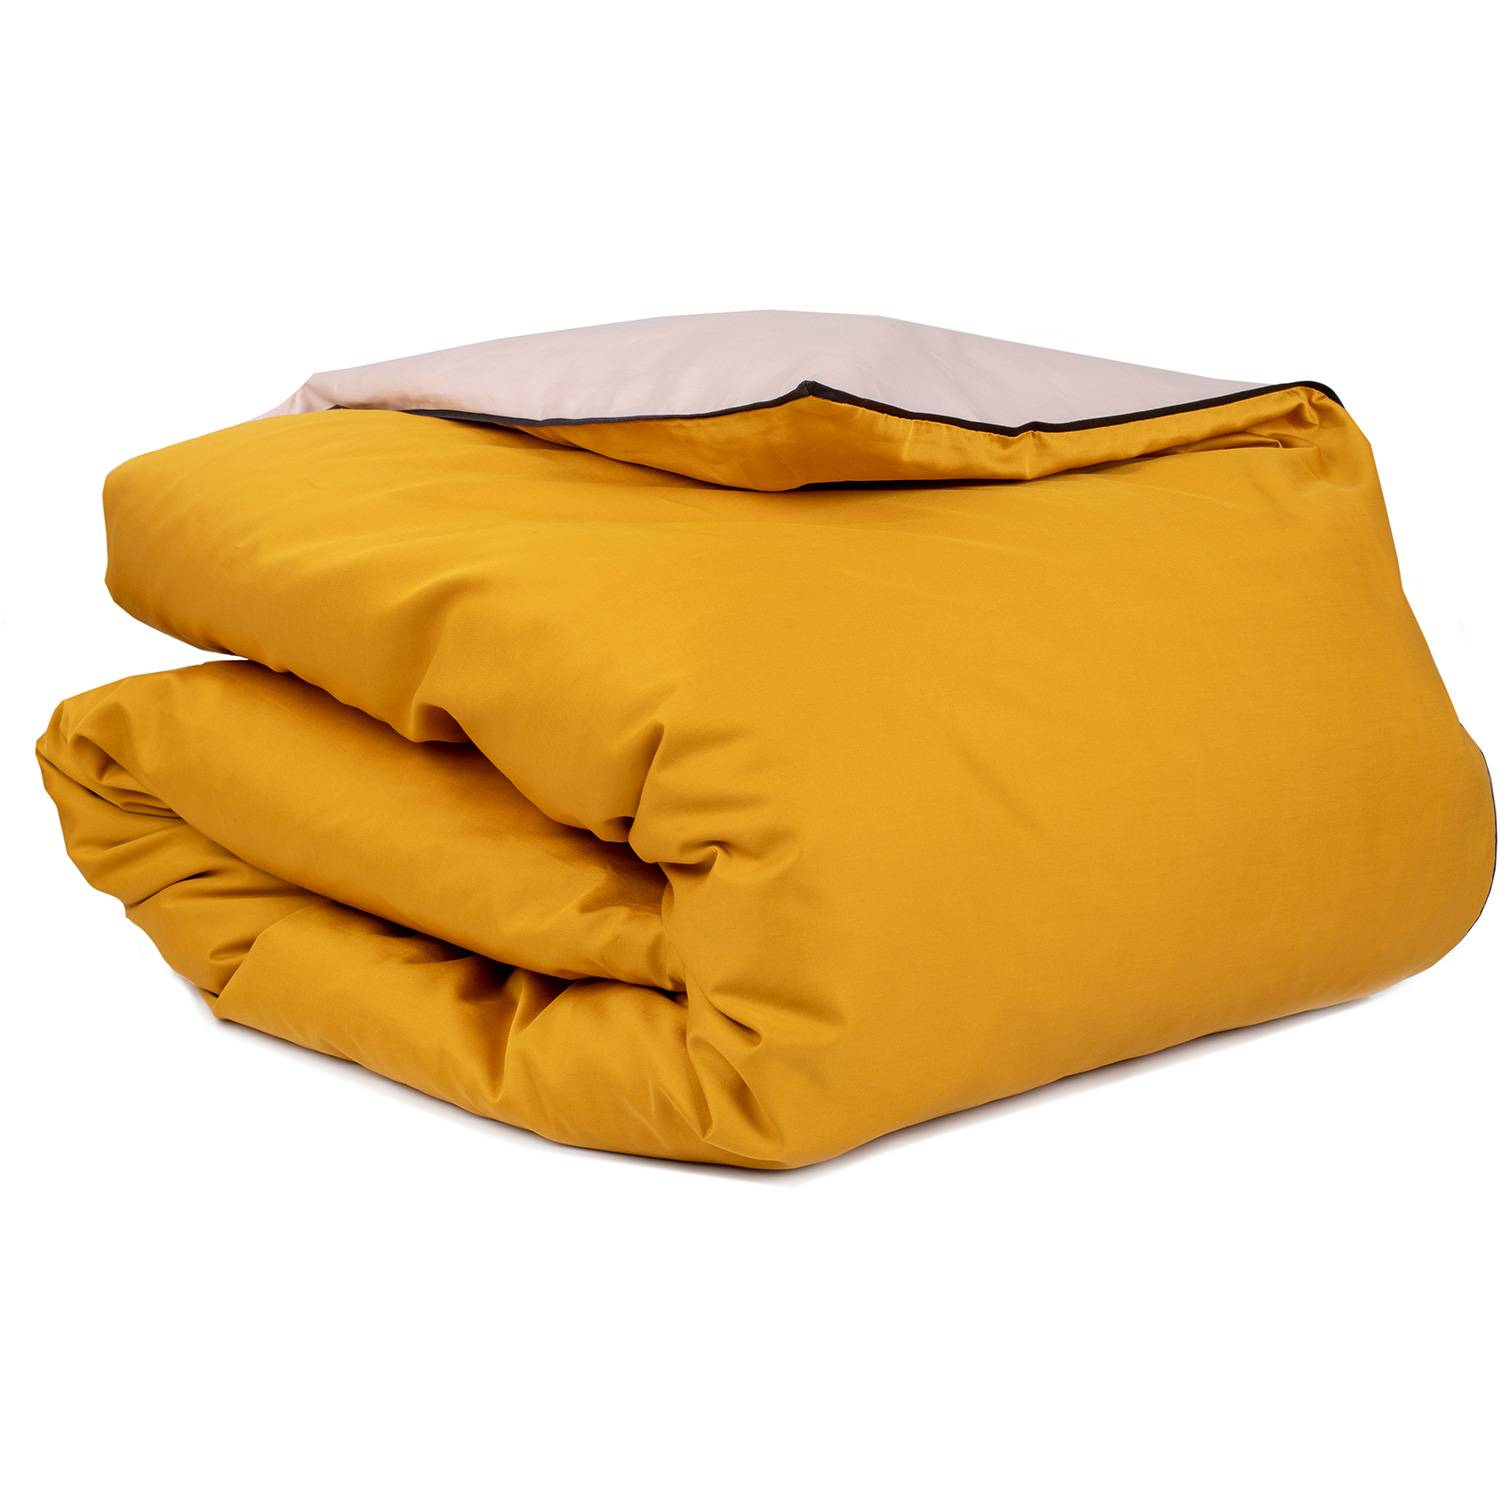 Mille Notti-Duetto Duvet Cover 140x220cm, Yellow/Light Pink